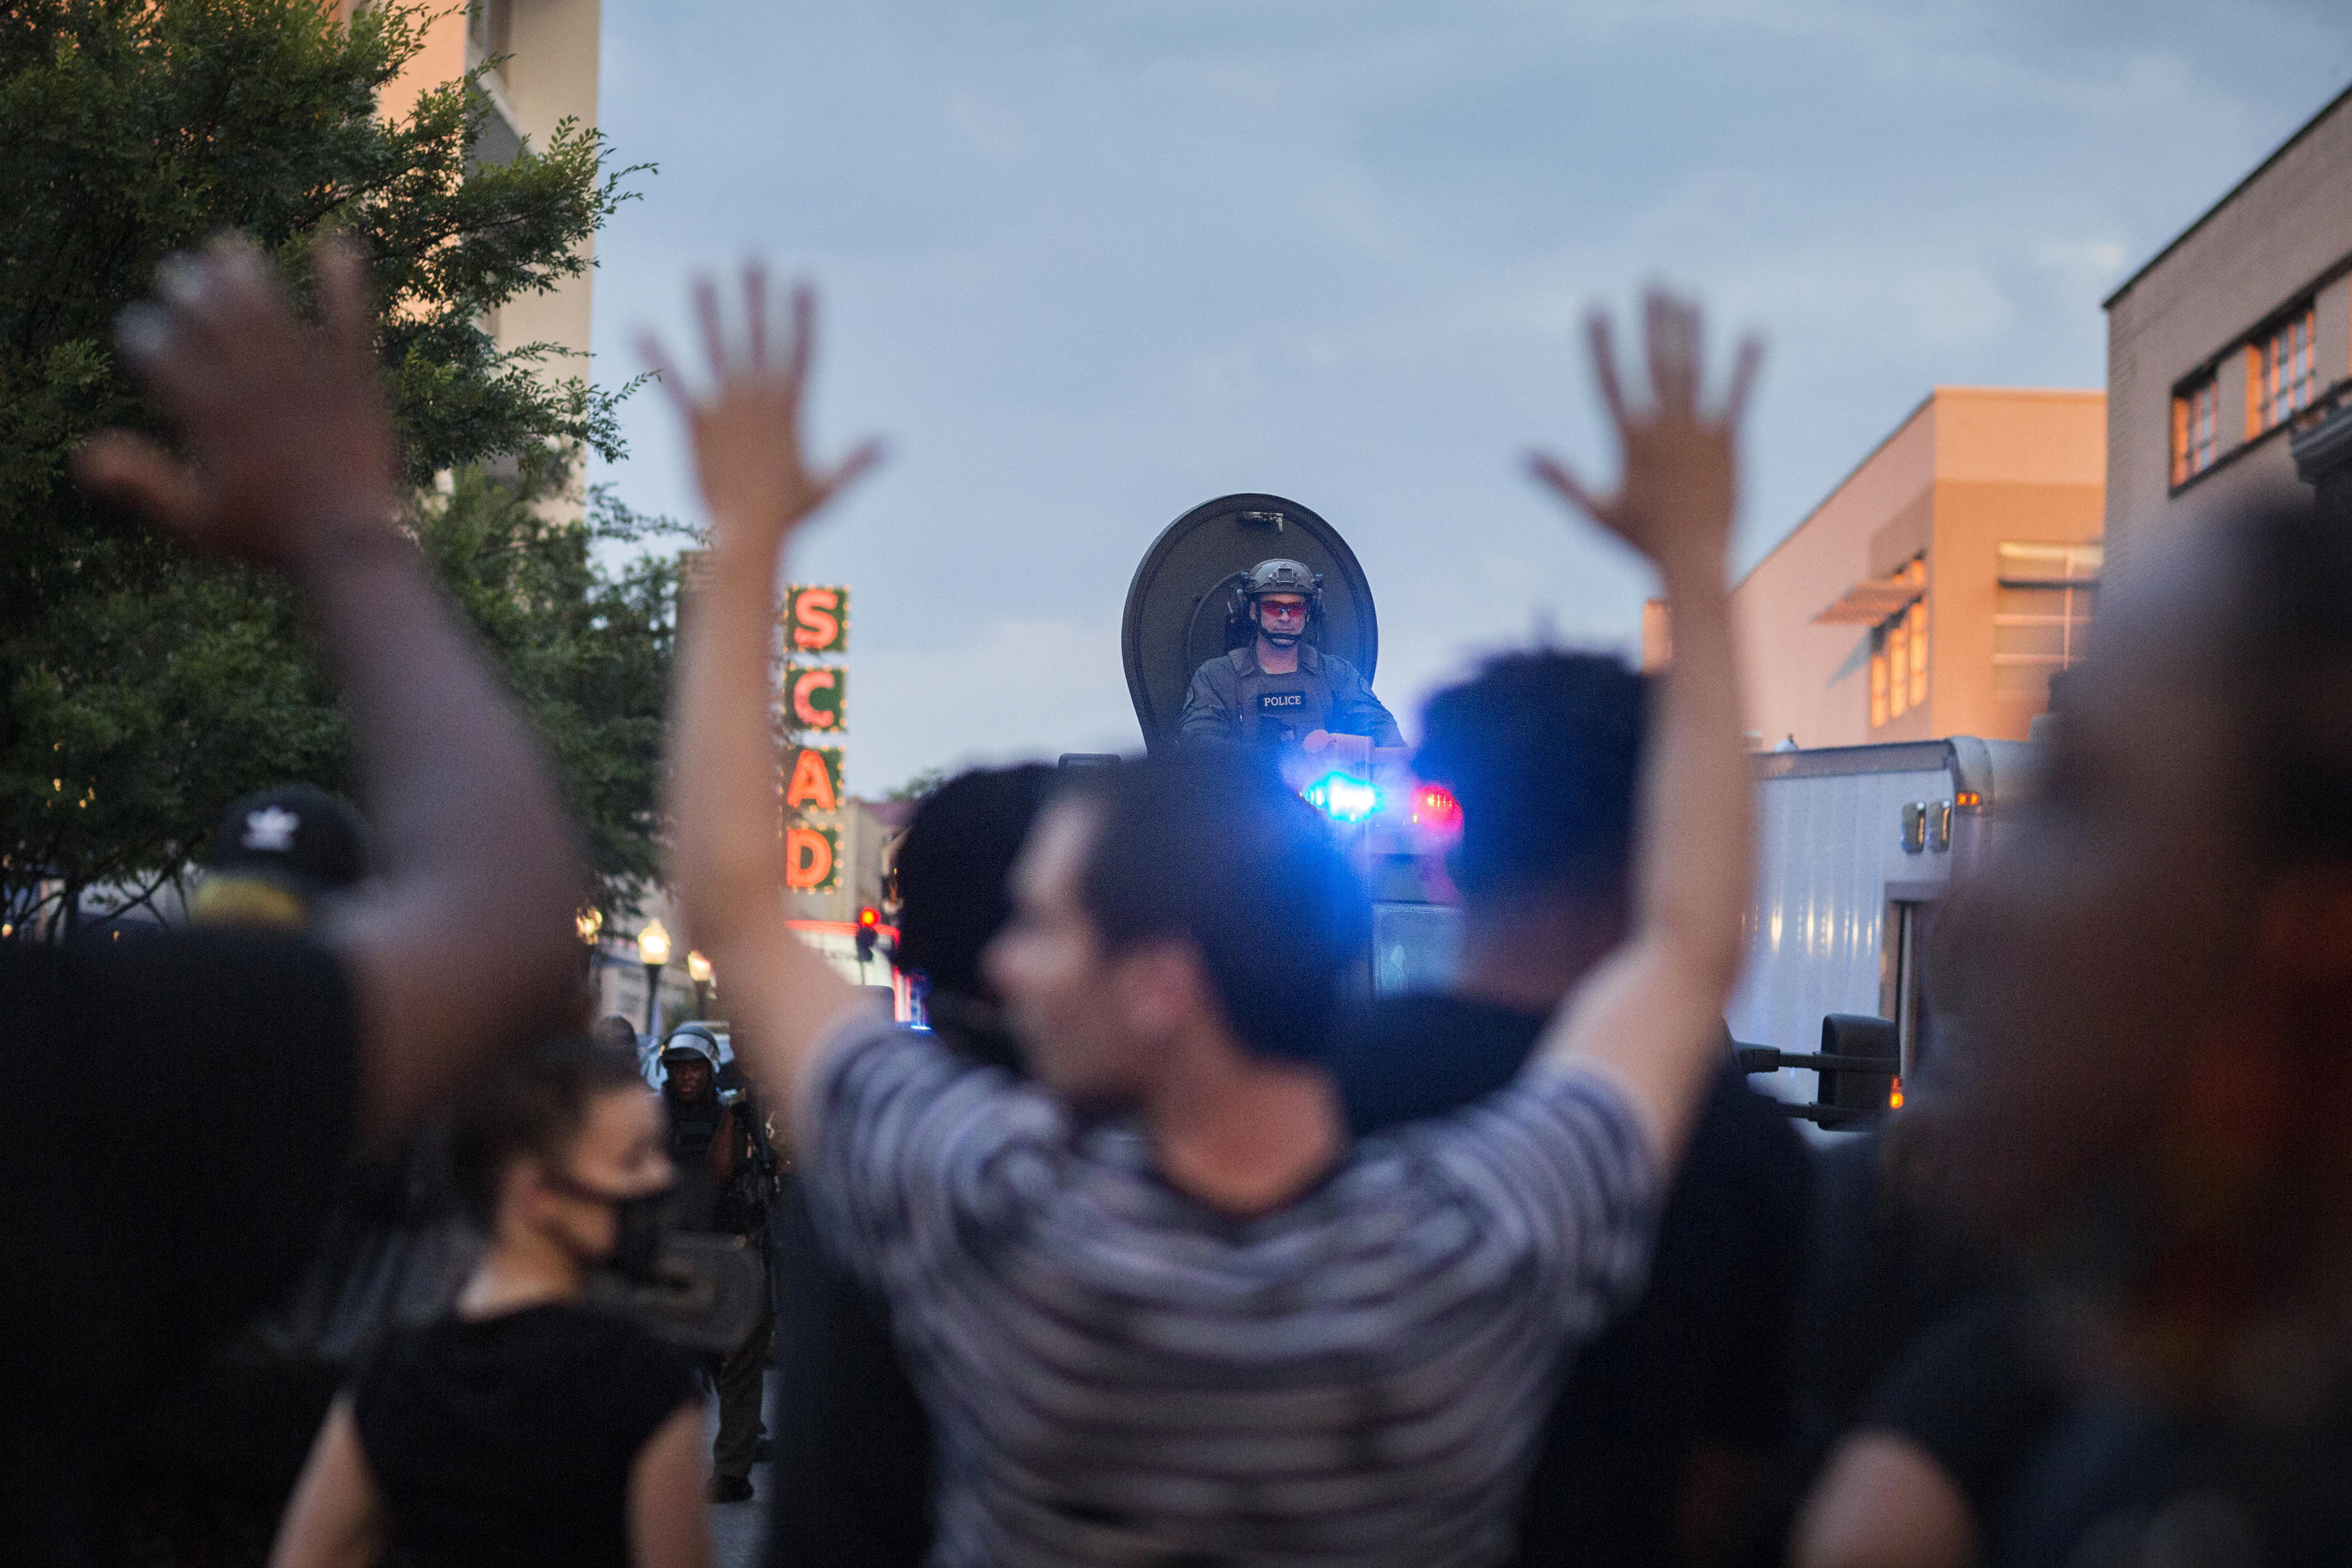 """Protesters hold hands up and chant """"don't shoot"""" during a standoff with Savannah police after a peaceful rally, Sunday, May 31, 2020, over the death of George Floyd in Minneapolis. (Stephen B. Morton/Atlanta Journal-Constitution via AP)"""